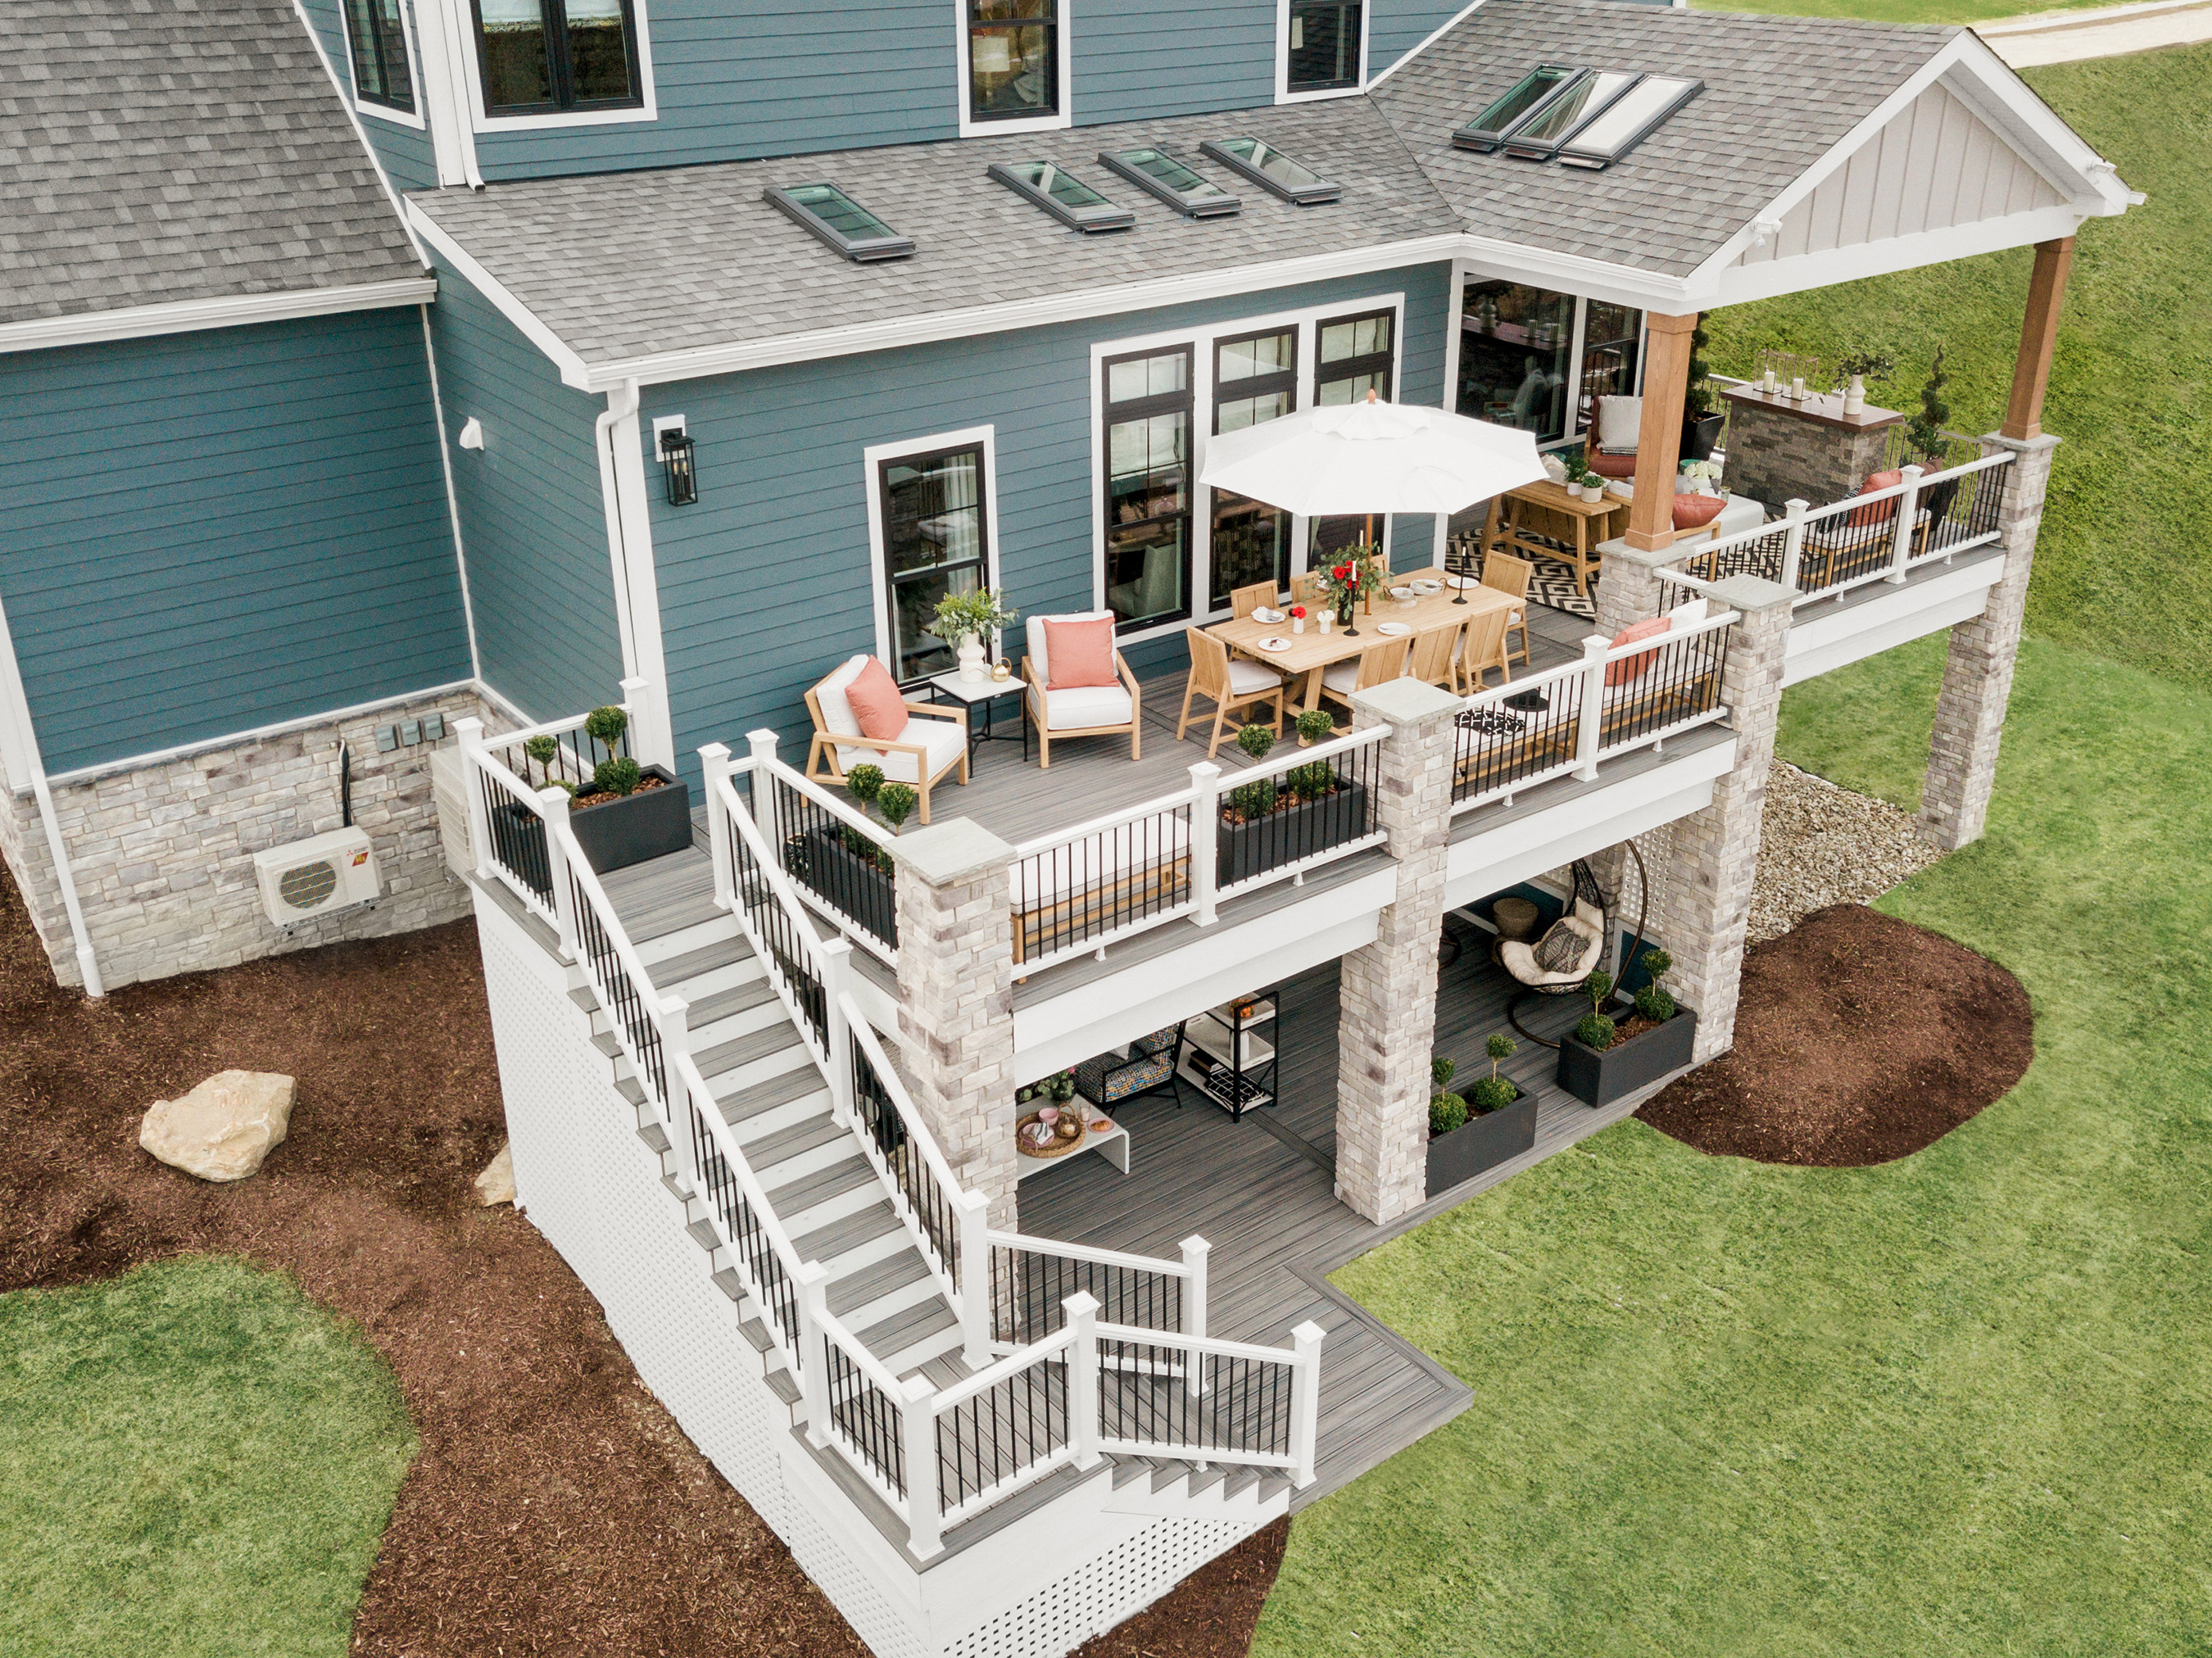 The HGTV Smart Home 2020 backyard is a cozy retreat complete with an upstairs and downstairs patio, as well as a personal pergola.